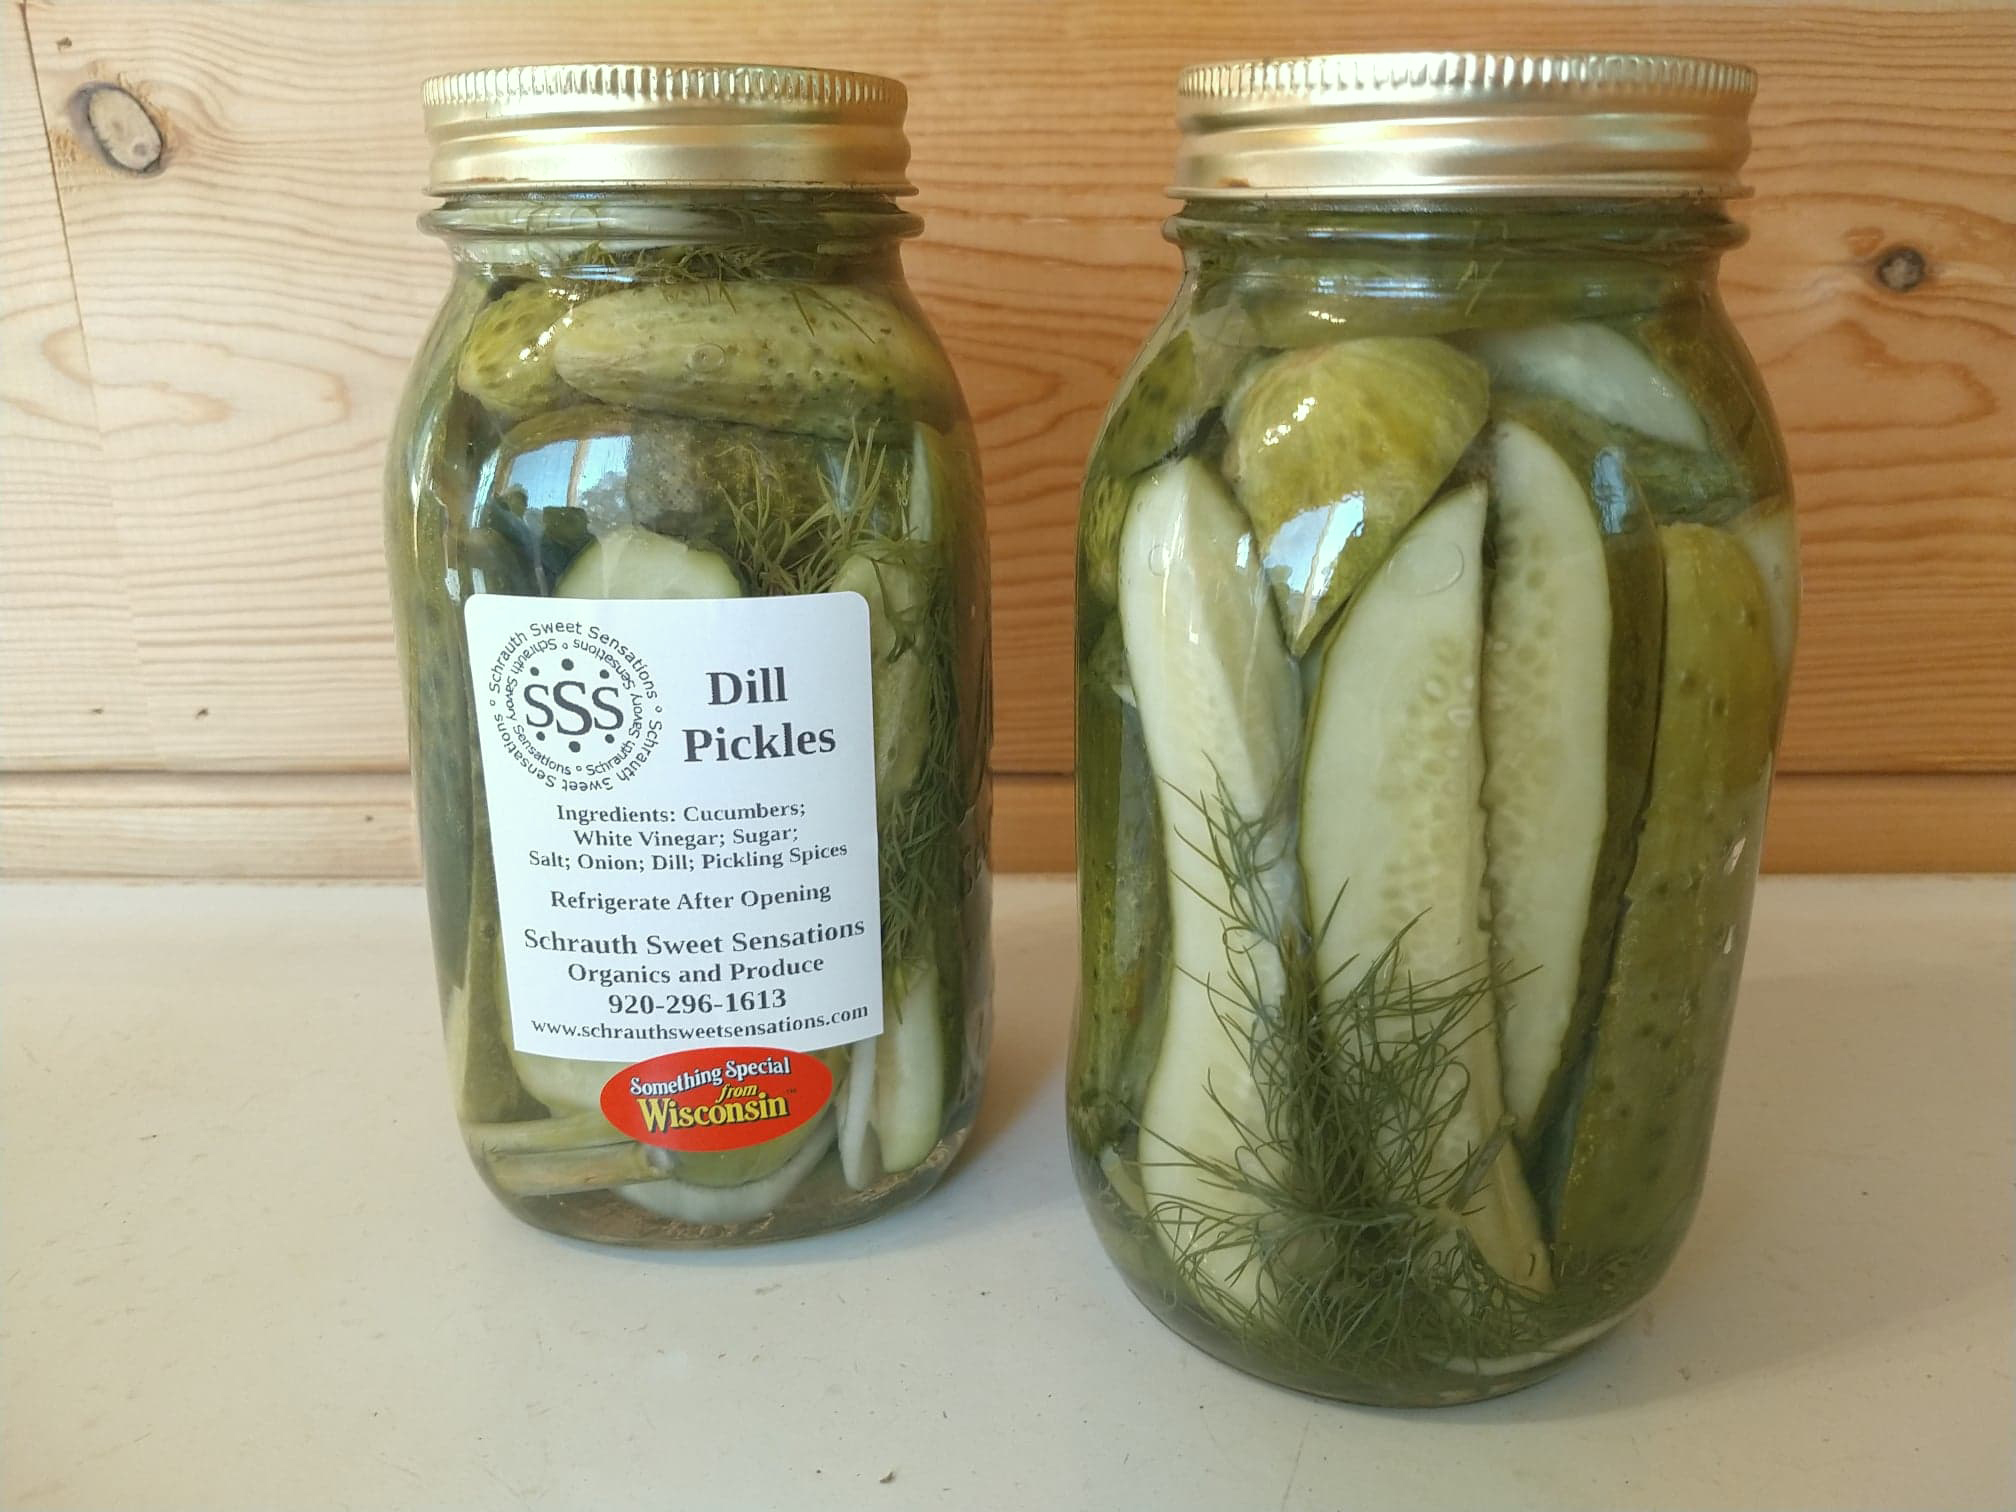 Dill Pickles - Fresh garden grown cucumbers are pickled in our dilly brine making it aperfect snack!$10.00 - Quart Jar